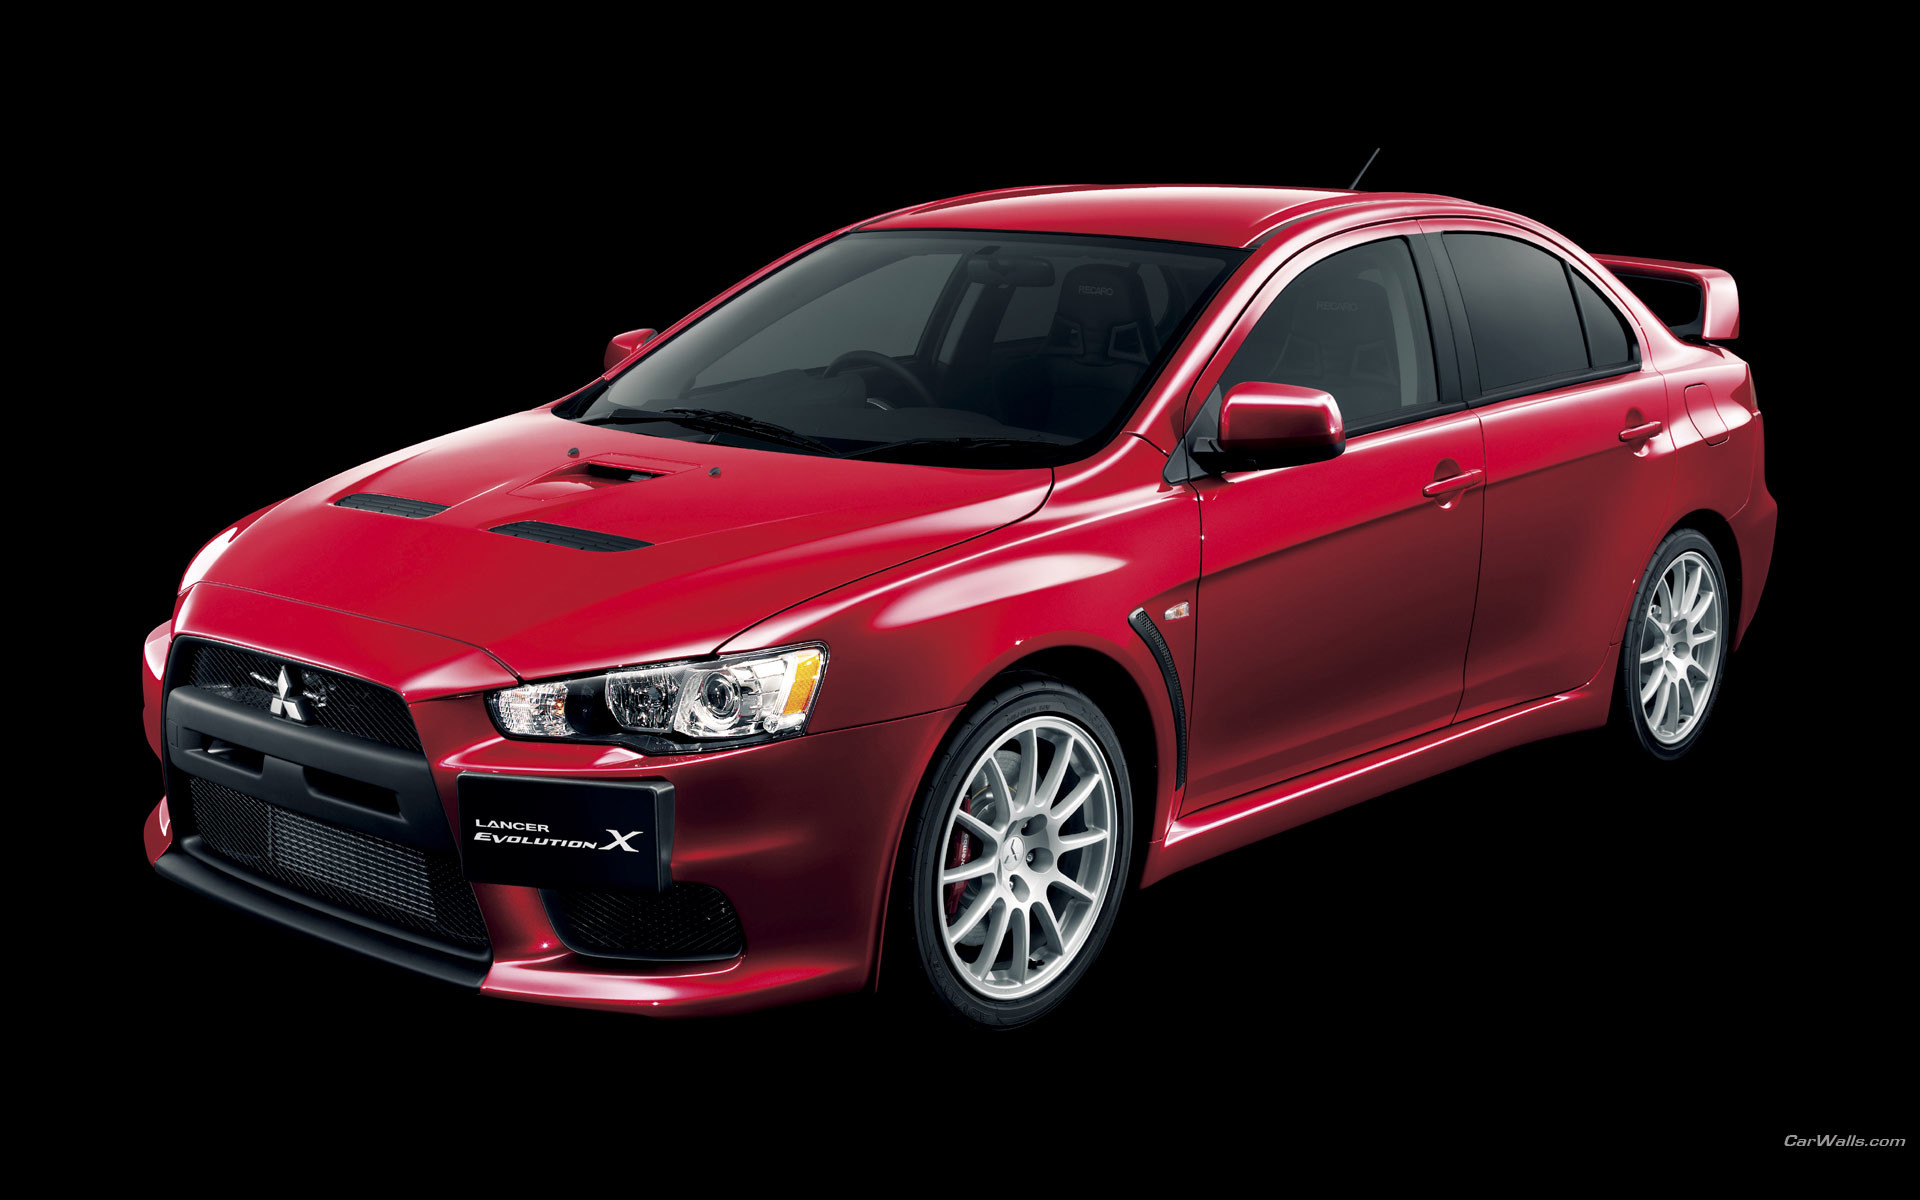 F additionally Mitsubishi Evo X By Vilner likewise Most Popular Mitsubishi Logo Wallpapers X For Meizu moreover Maxresdefault furthermore Mitsubishi Lancer Ex X Wallpaper. on 2016 mitsubishi lancer ex